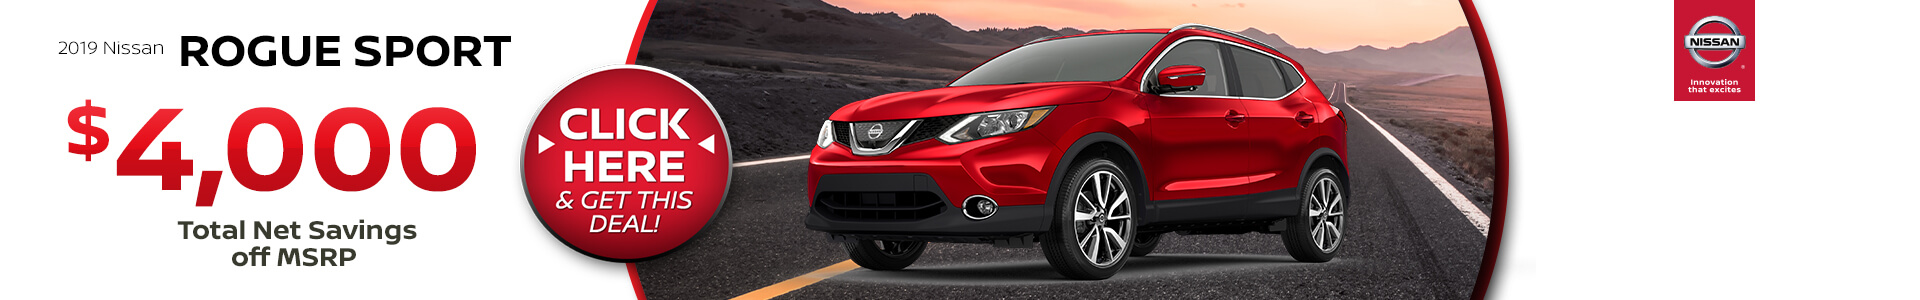 Nissan Rogue Sport $188 Lease